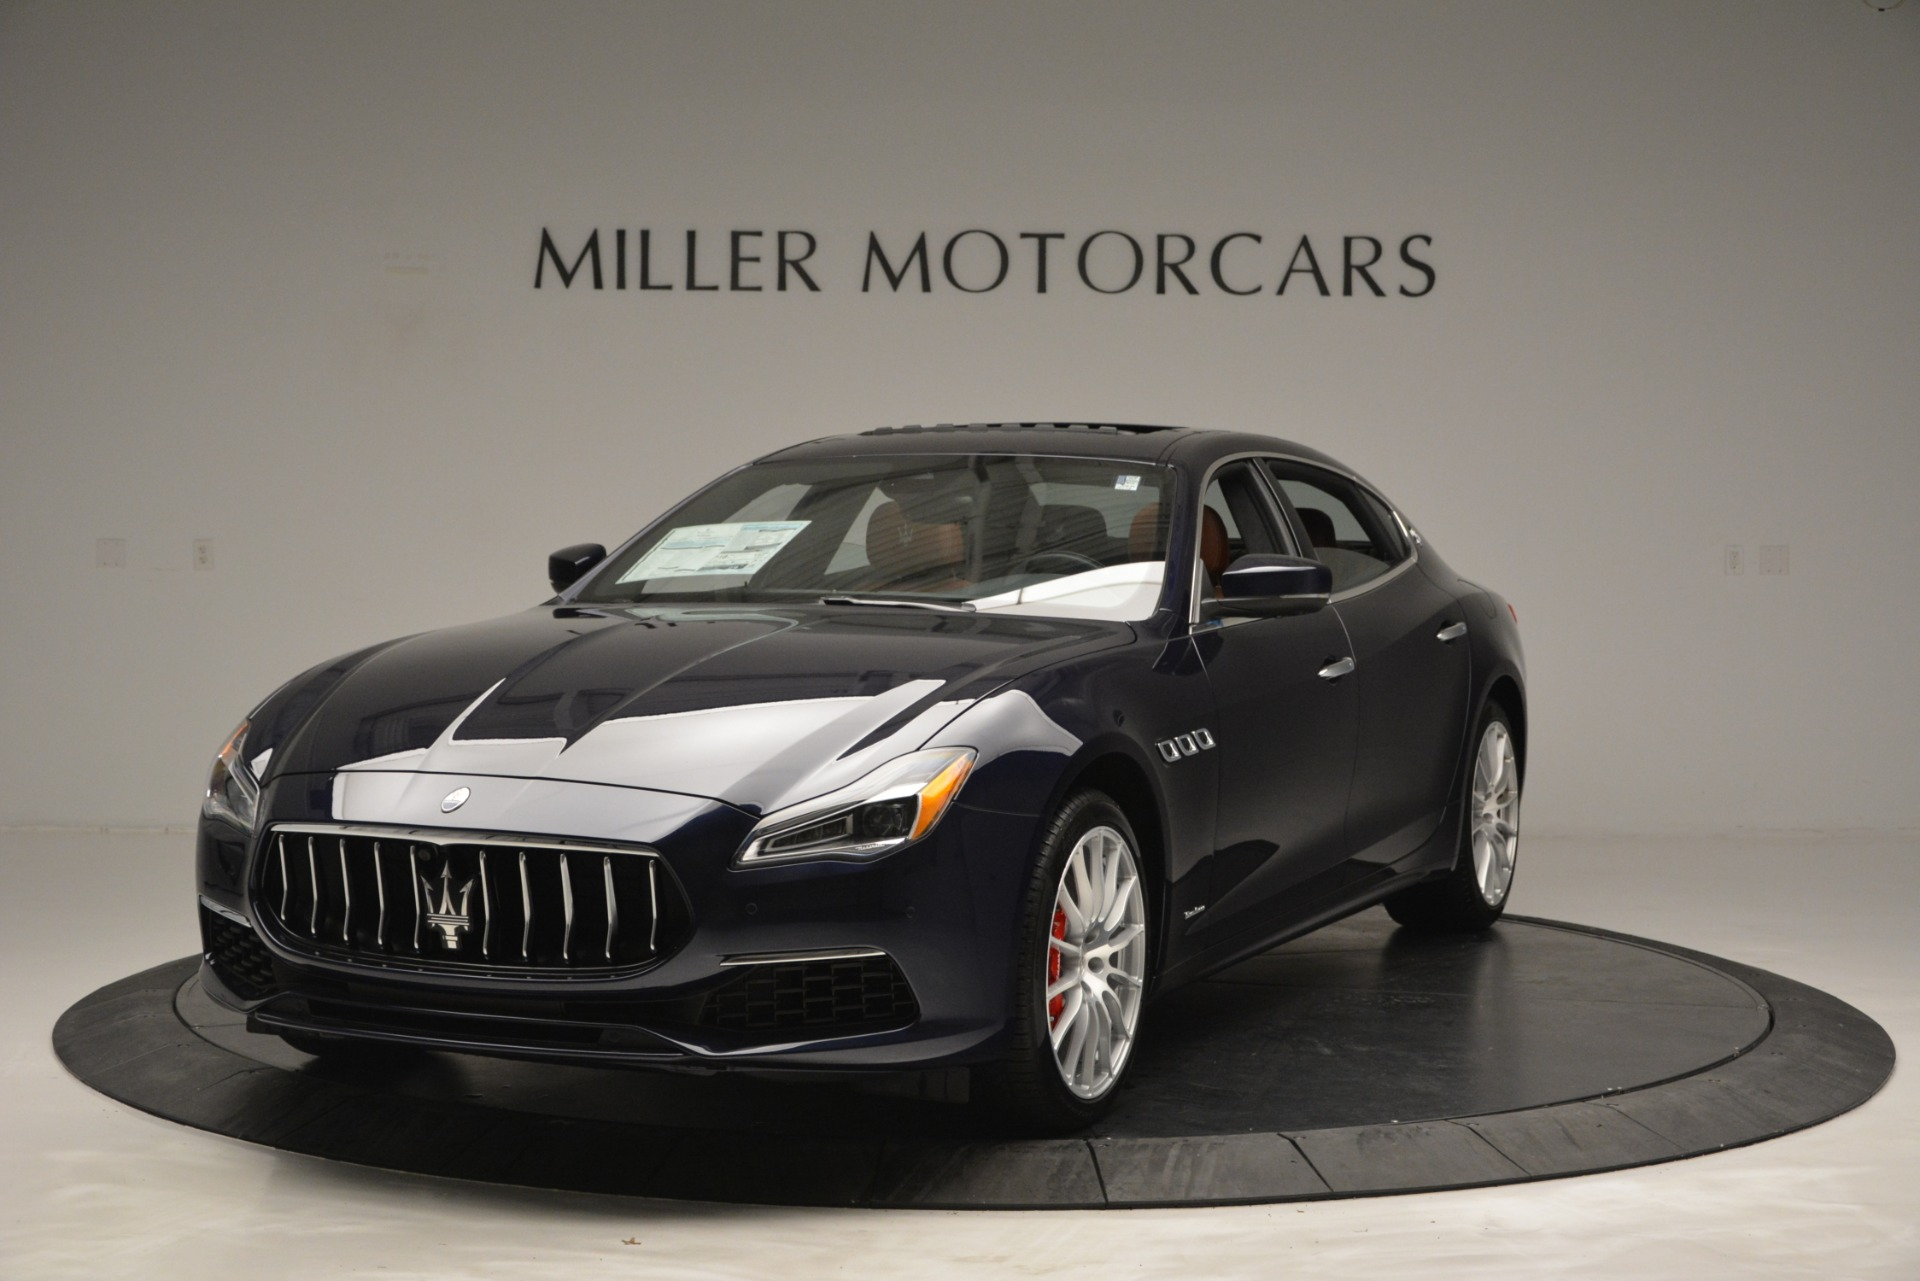 New 2019 Maserati Quattroporte S Q4 GranLusso For Sale In Westport, CT 2620_main